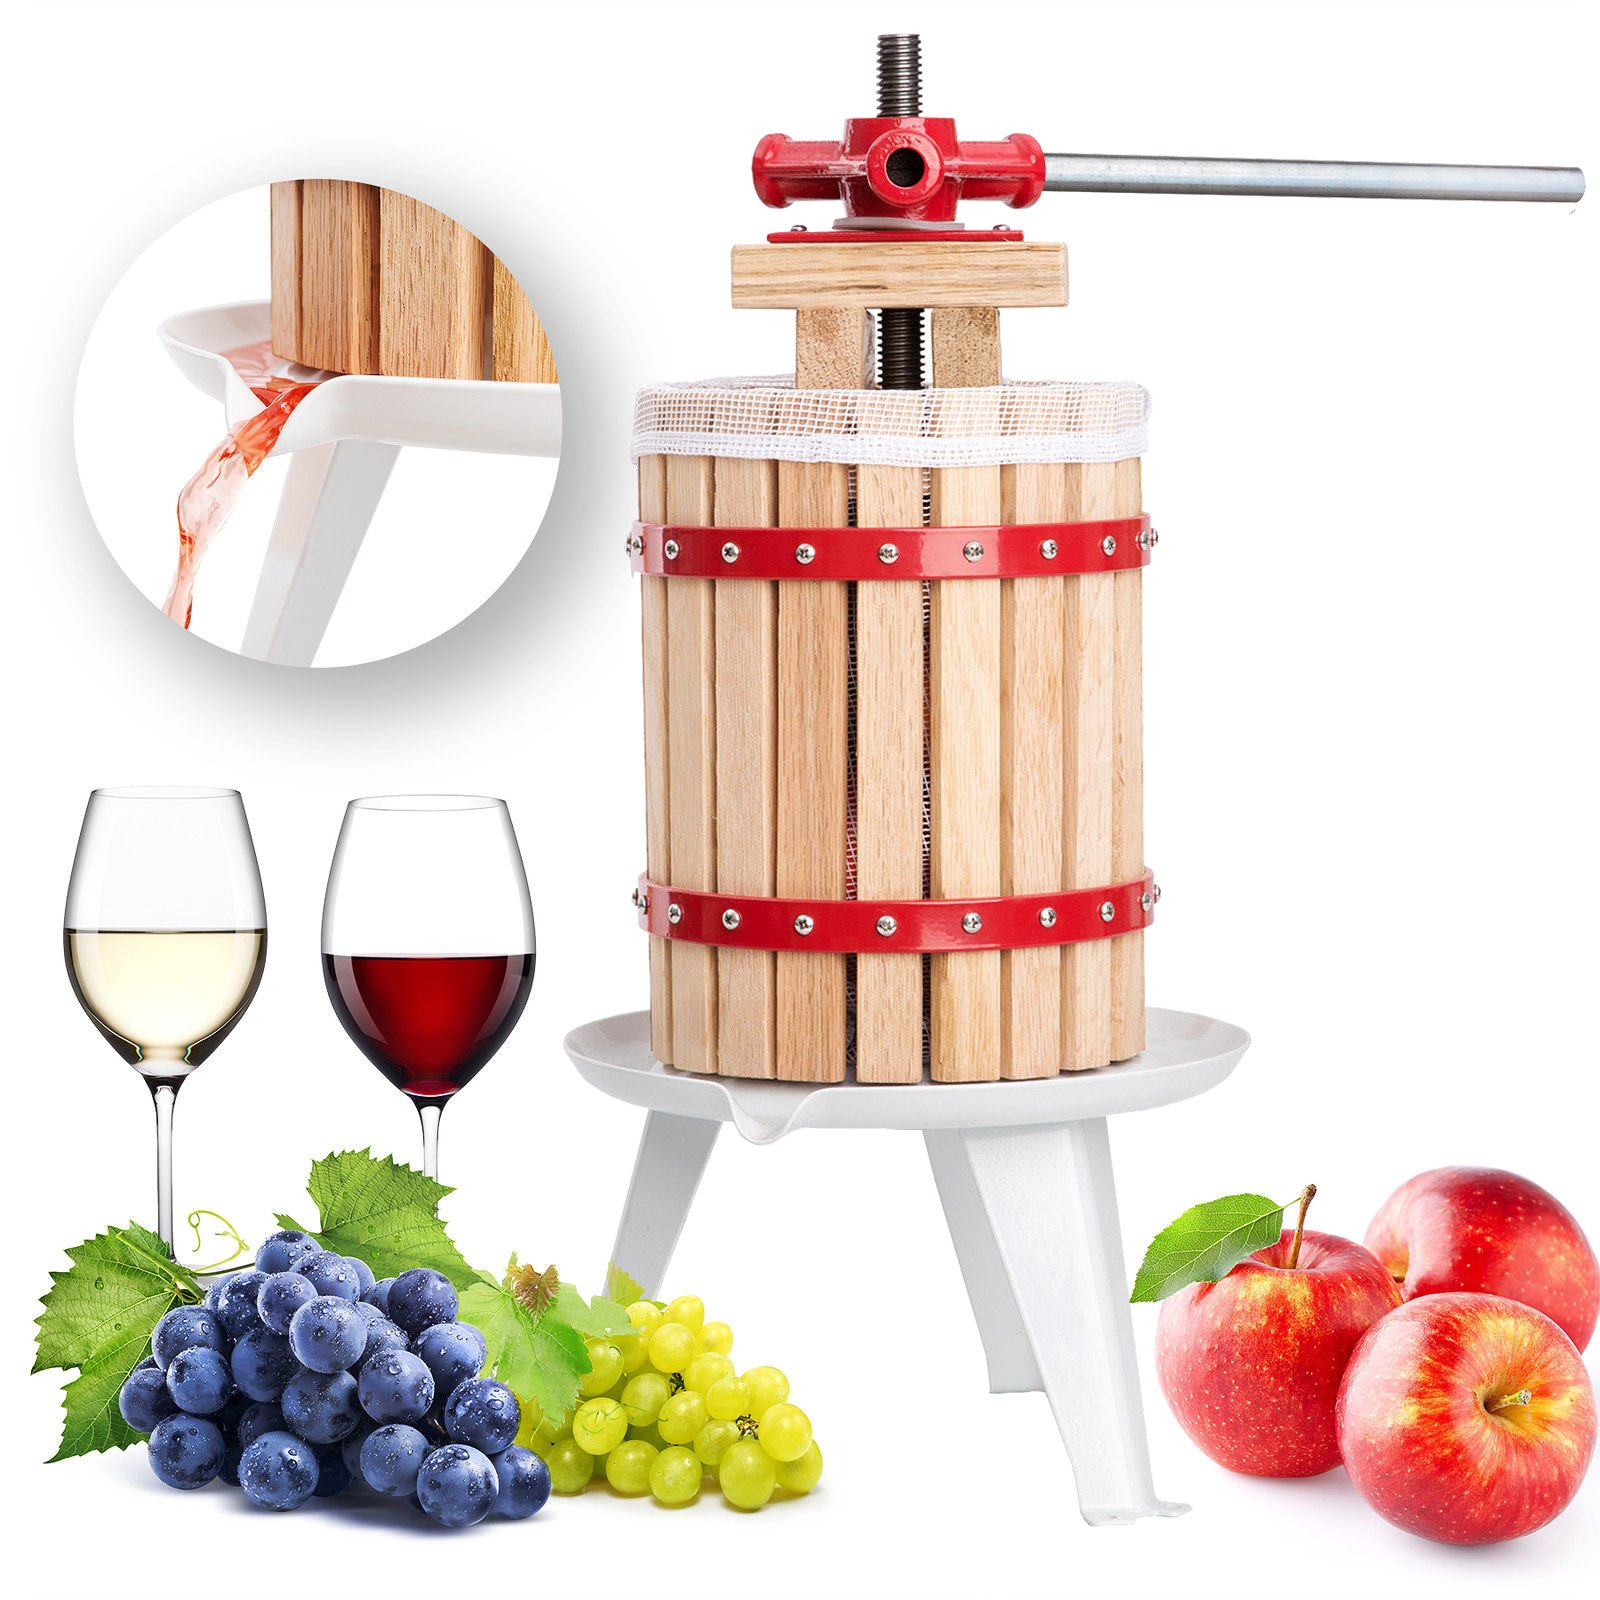 FISTERS 18L Wood Fruit Wine Press Cider Apple Grape Crusher Juice Maker Tool by FISTERS (Image #1)